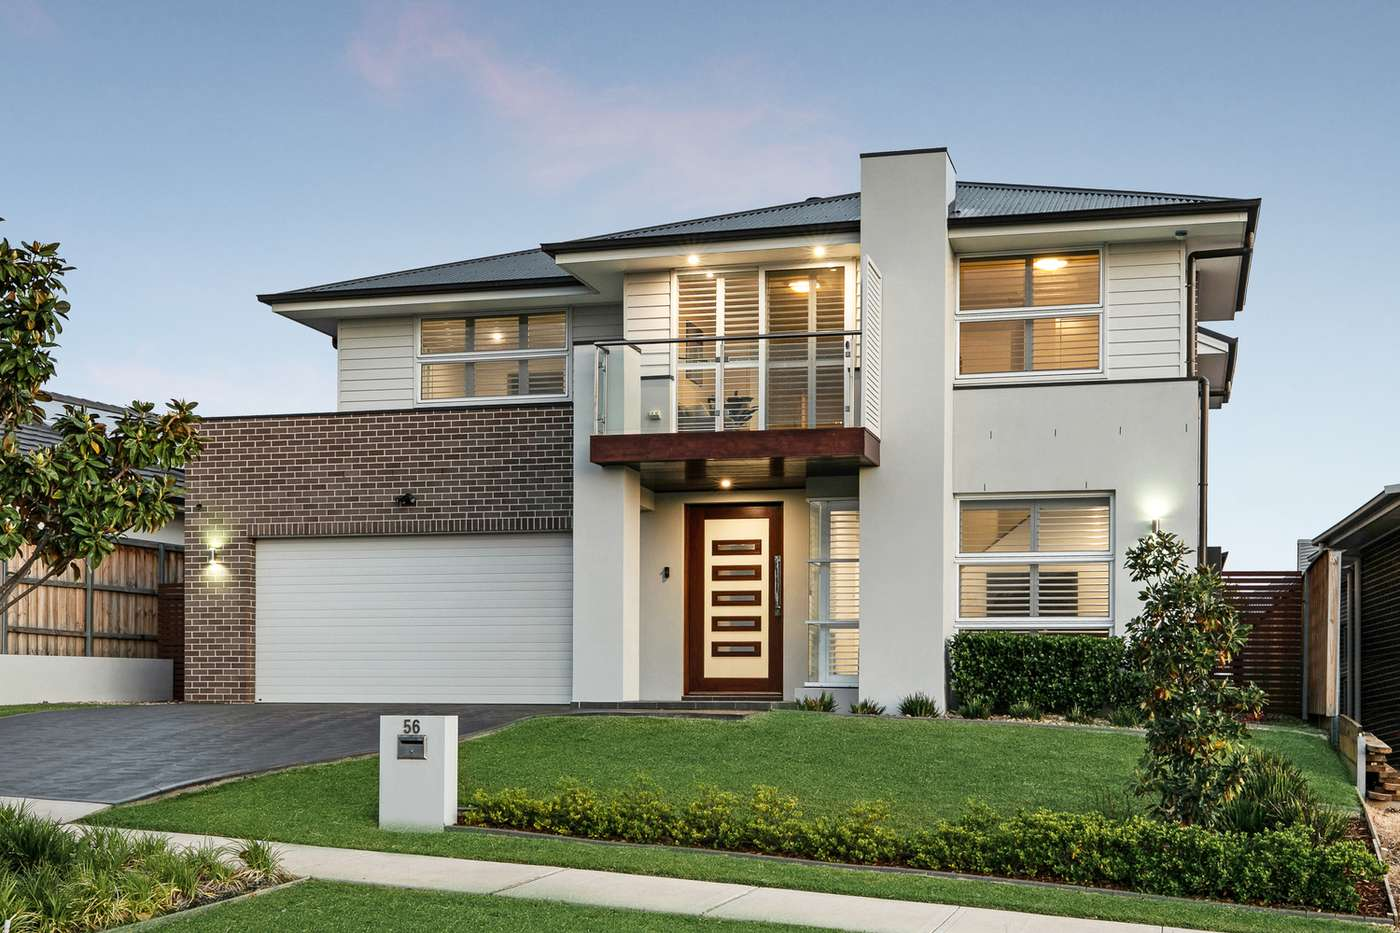 Main view of Homely house listing, 56 Lillydale Avenue, Gledswood Hills, NSW 2557